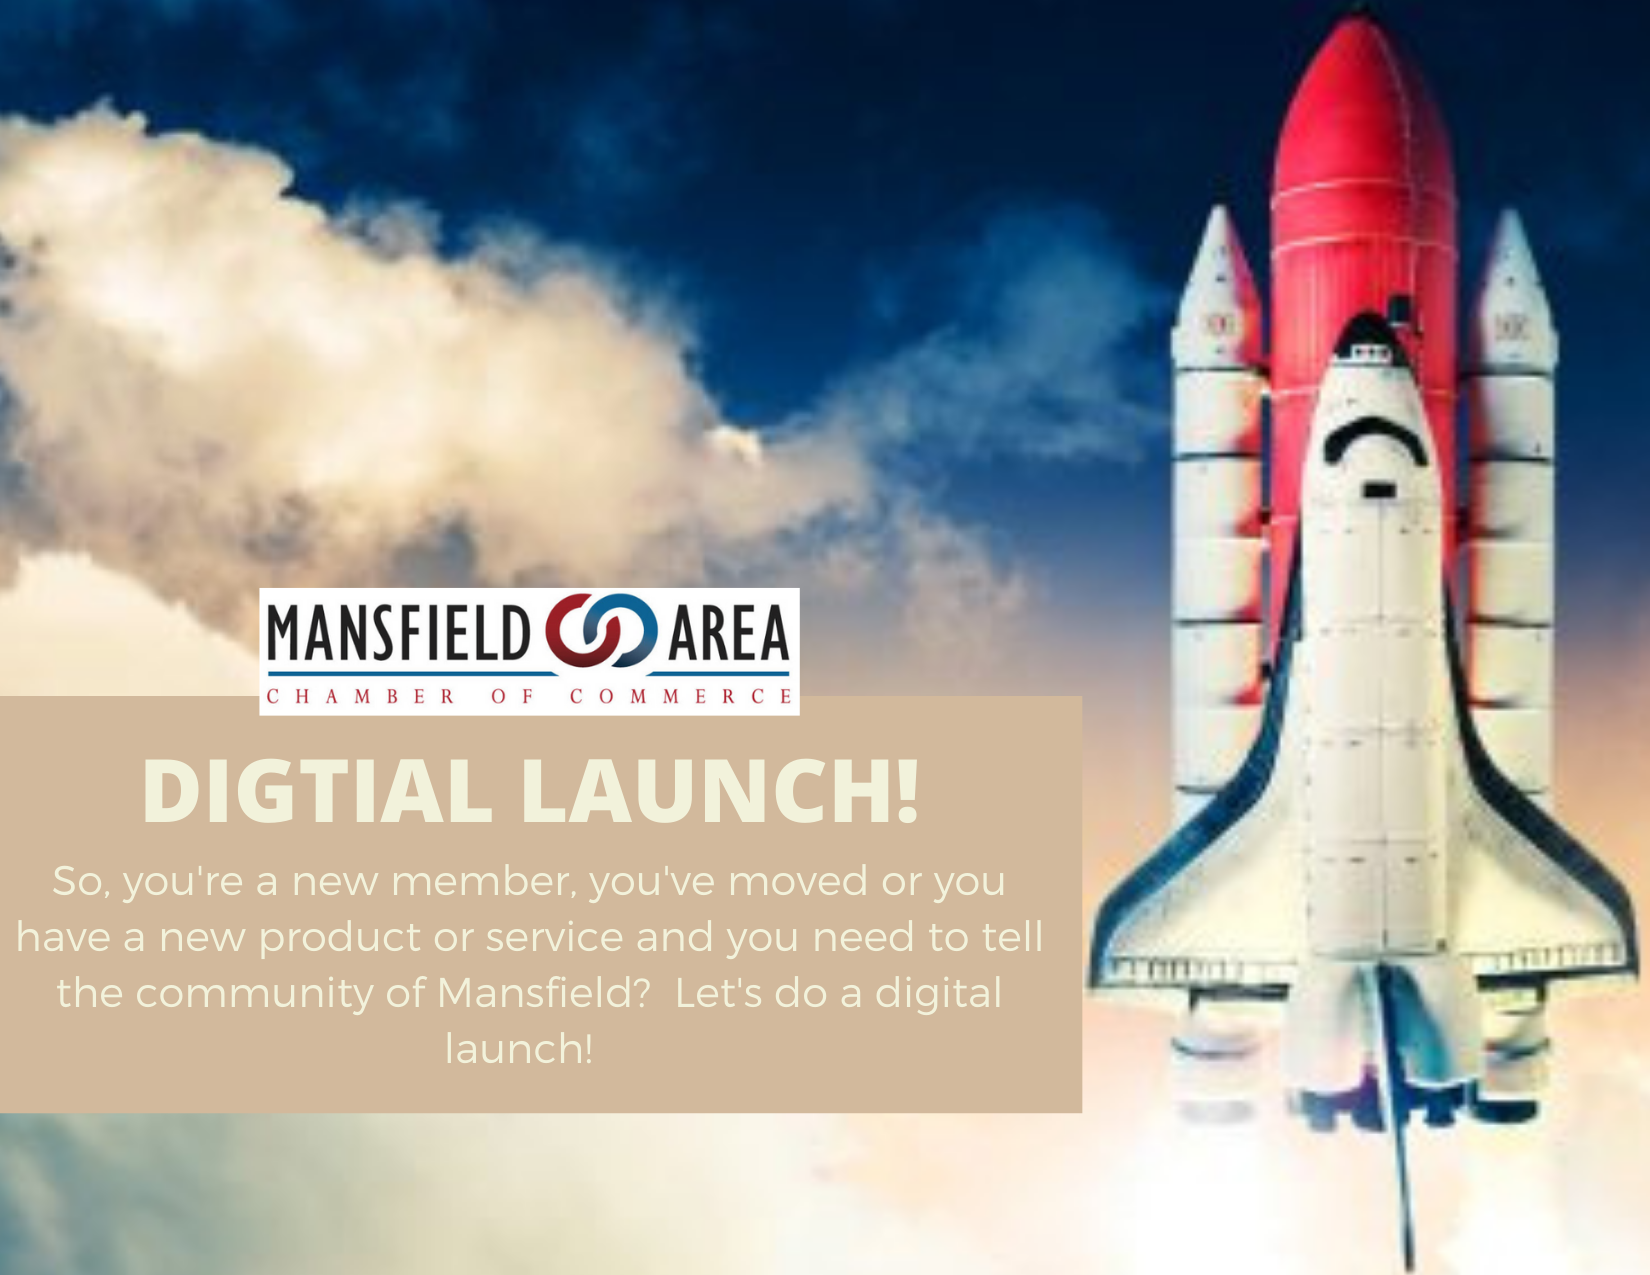 DIGTIAL LAUNCH!